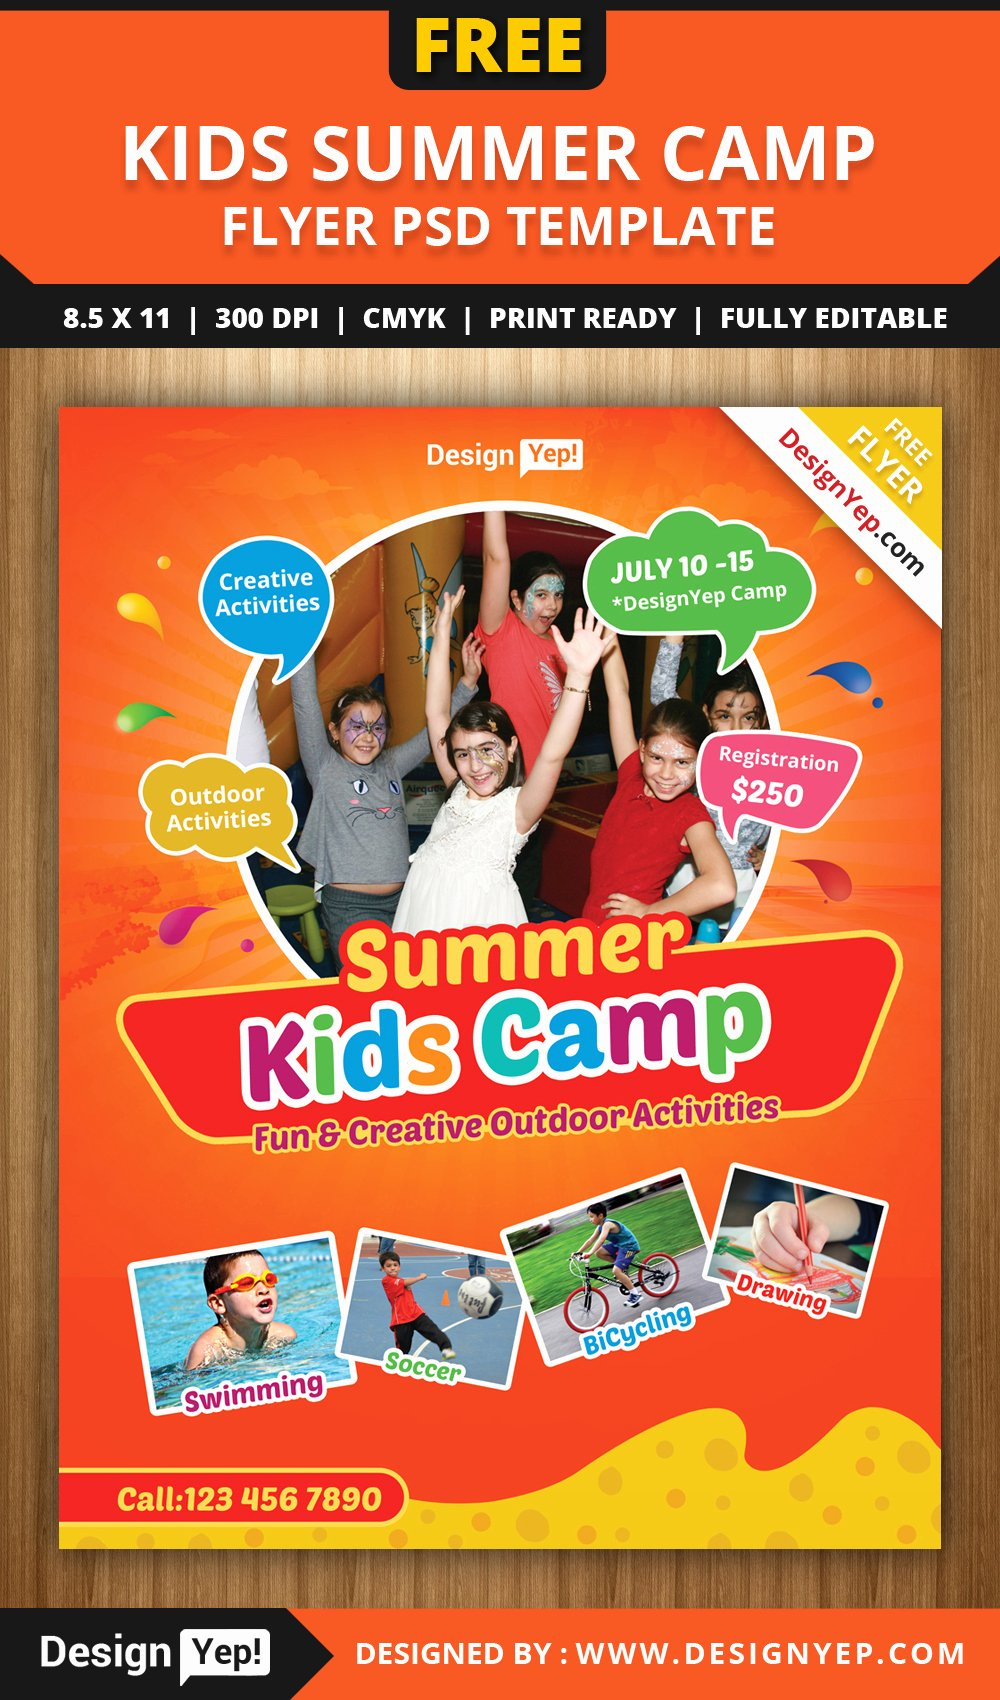 Free Kids Summer Camp Flyer Psd Template Designyep